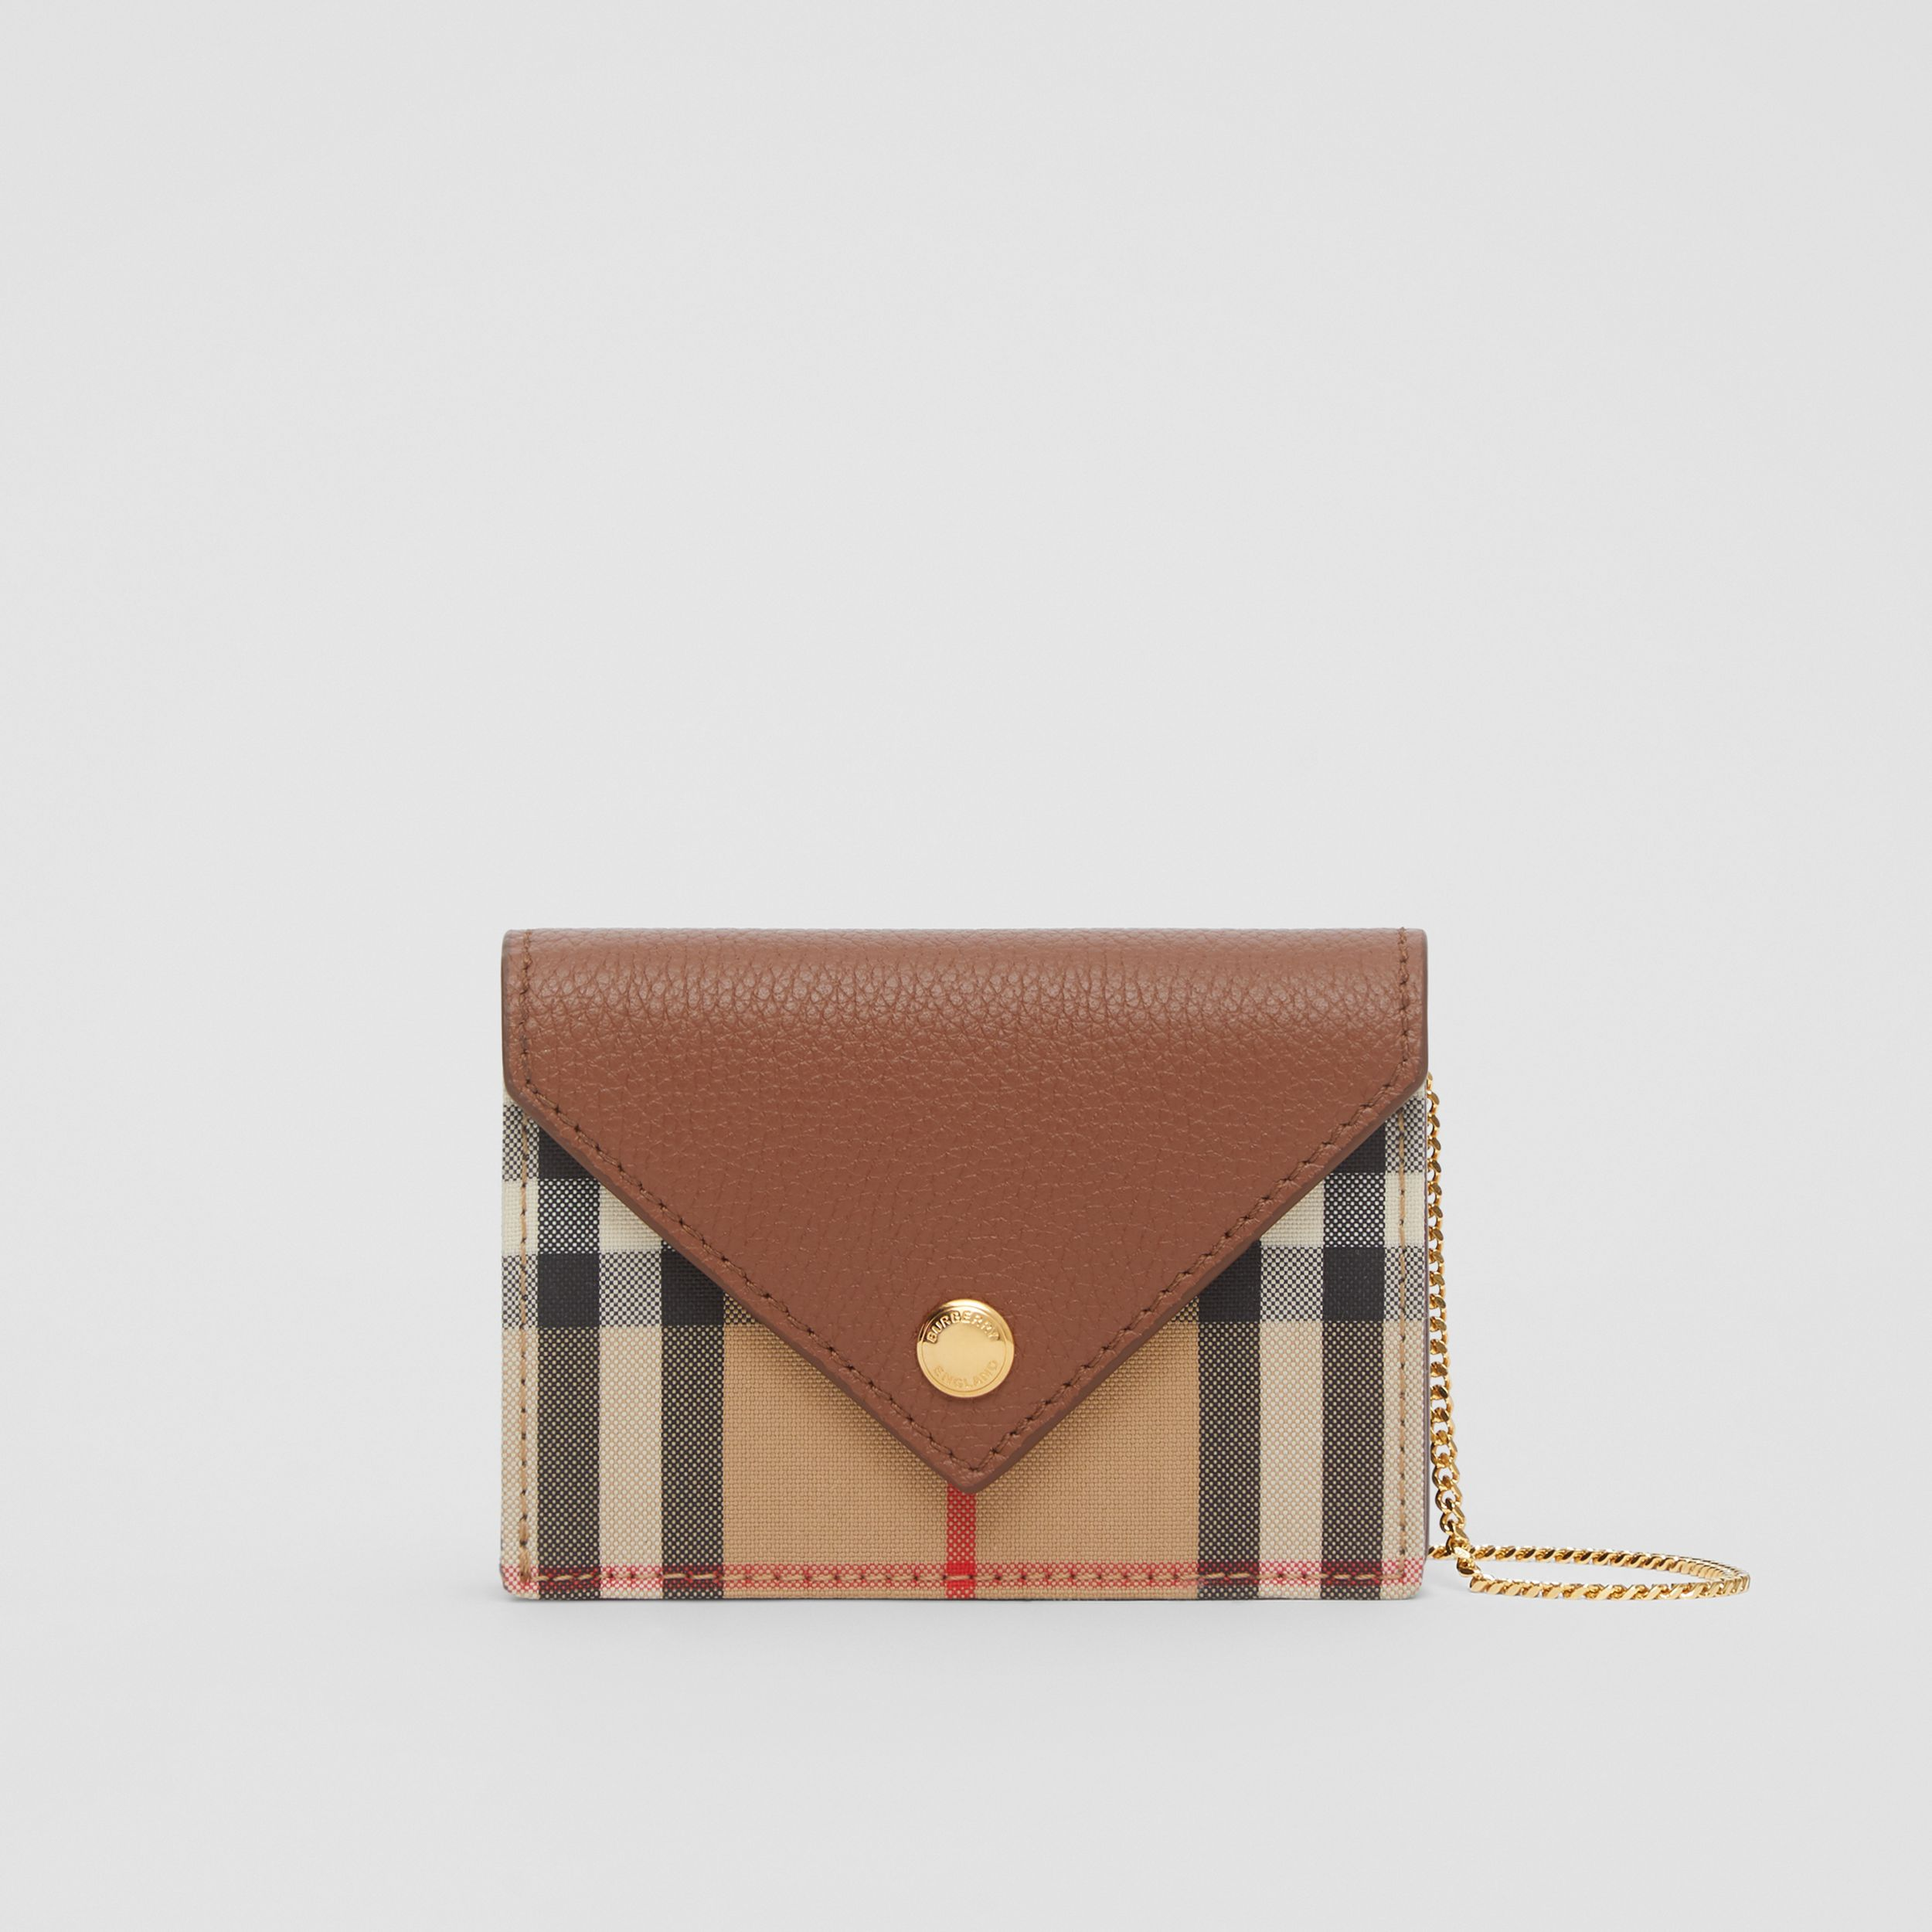 Vintage Check and Leather Card Case with Strap in Tan - Women | Burberry - 1